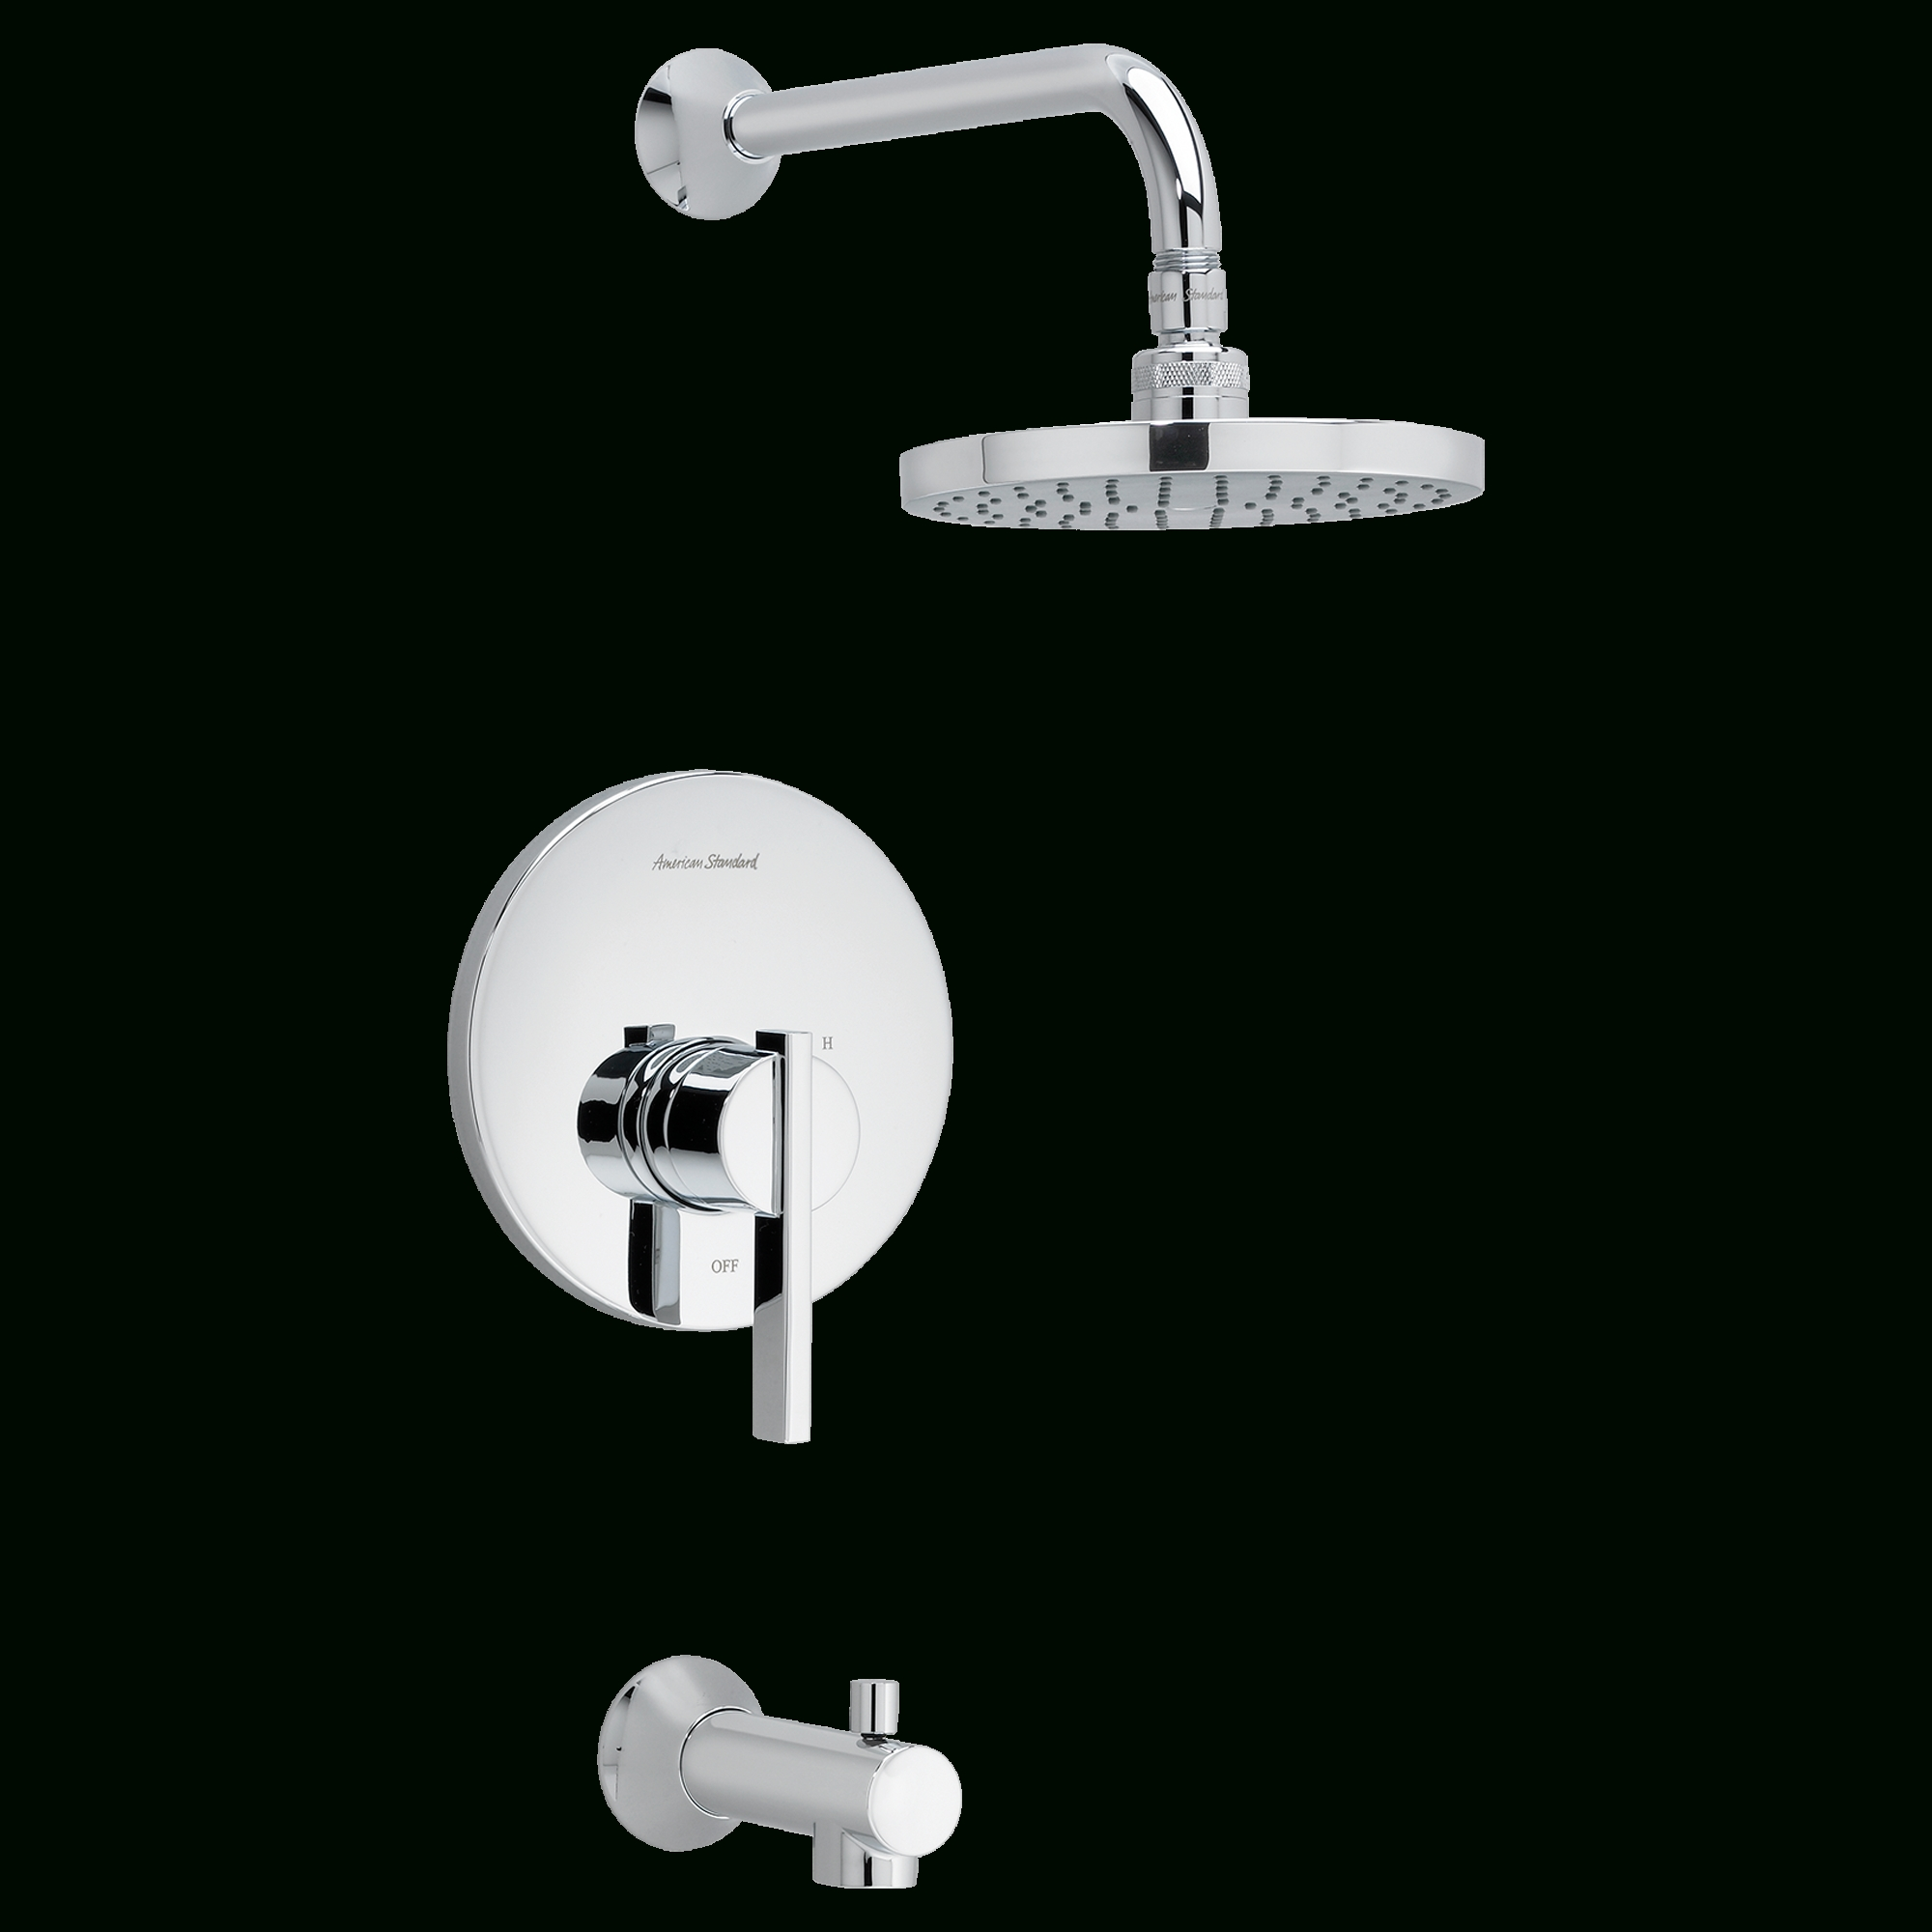 Berwick Bath Shower Faucet Trim Kit - American Standard pertaining to American Standard Shower Faucet Parts Diagram